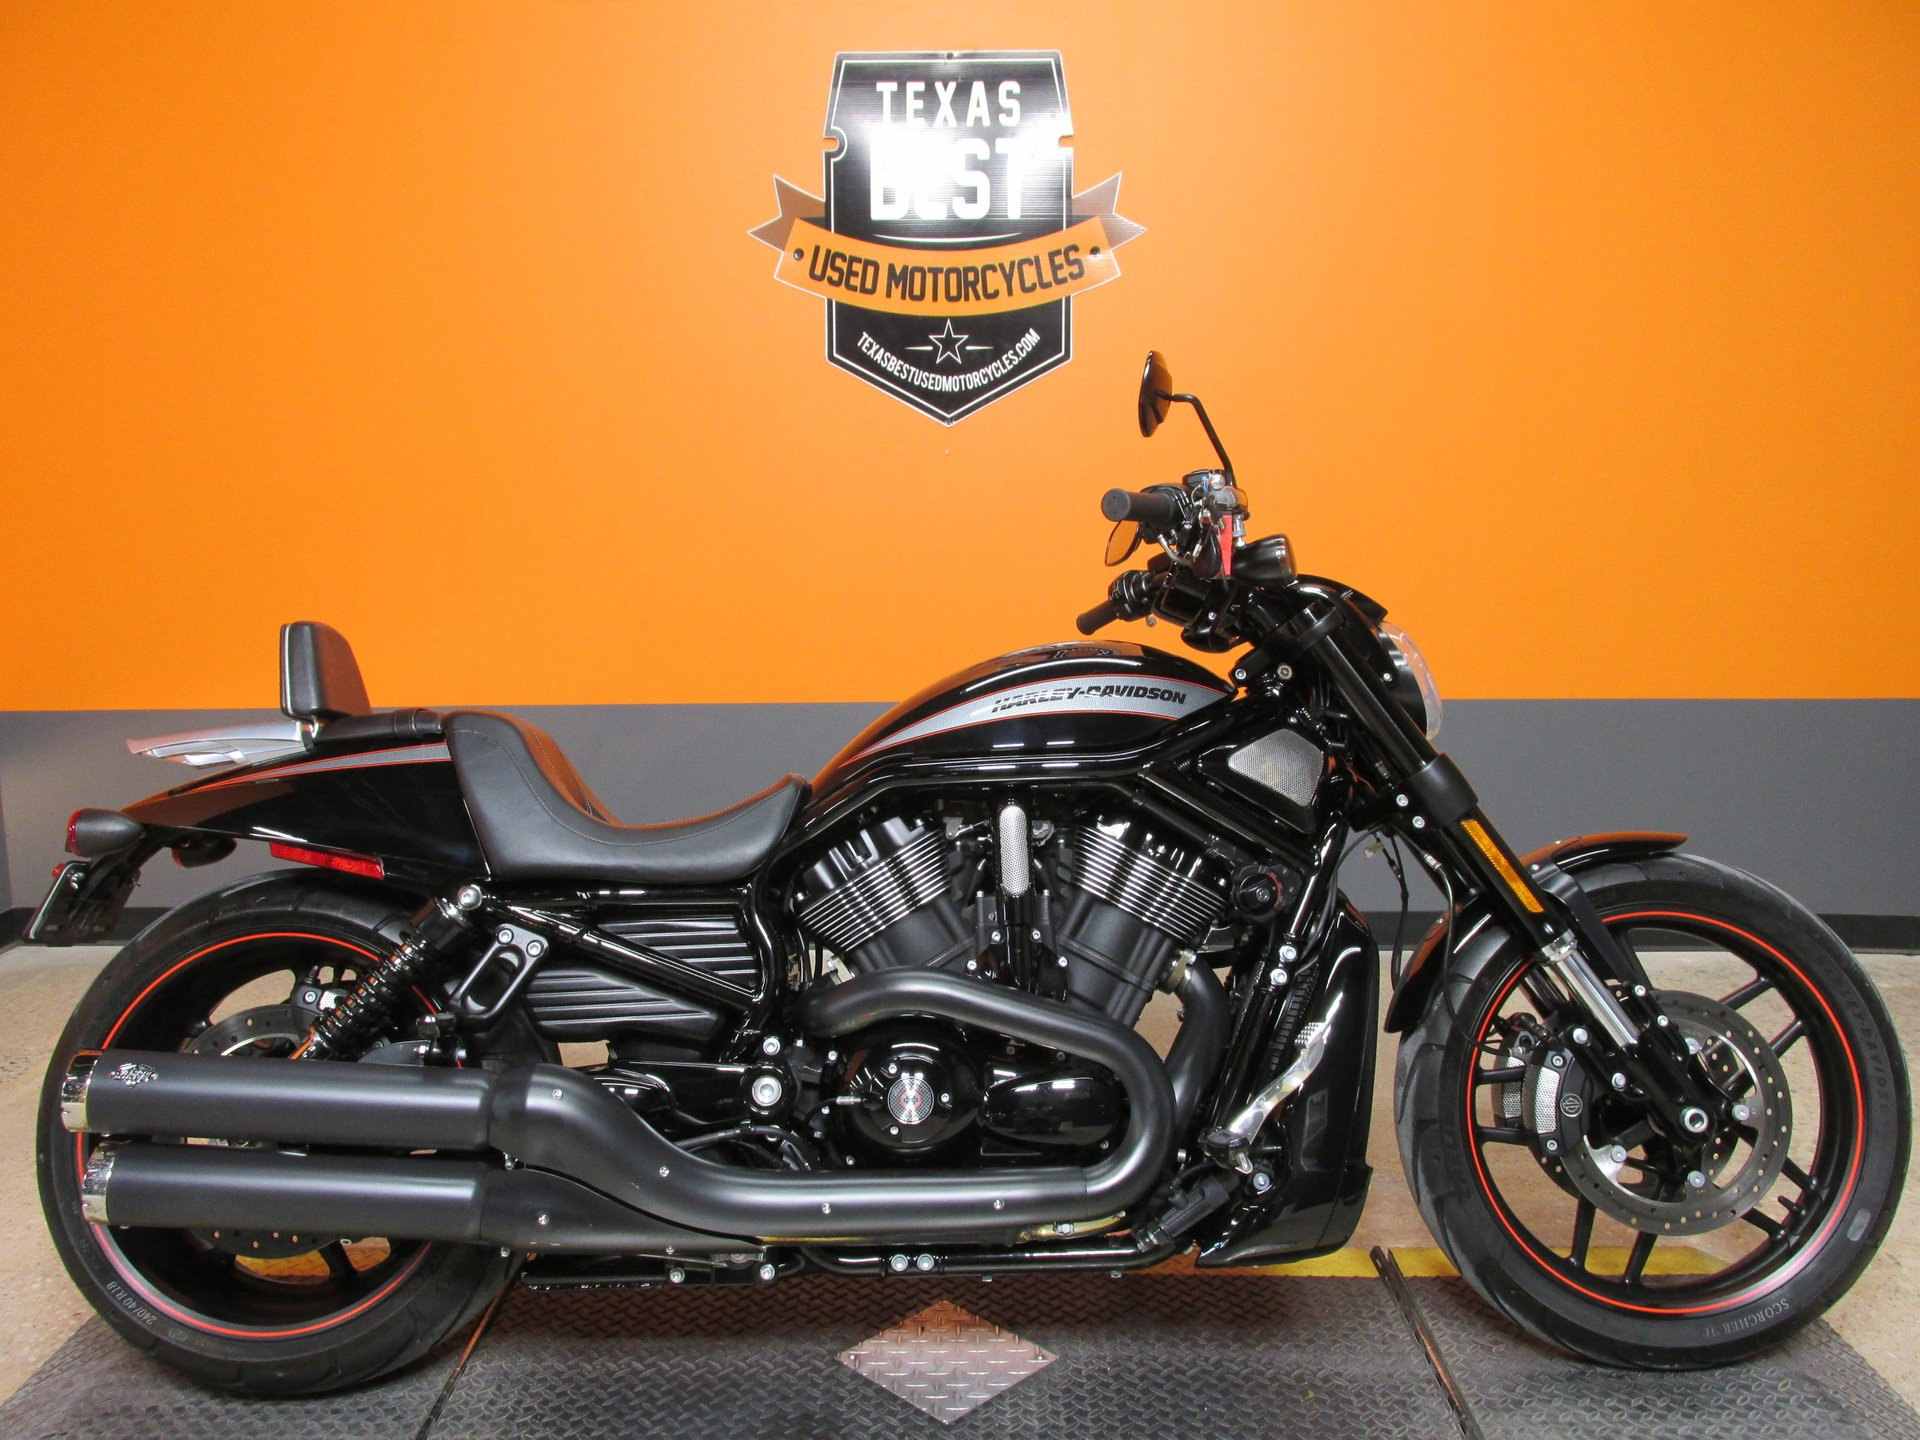 2014 harley davidson v rod night rod special vrscdx